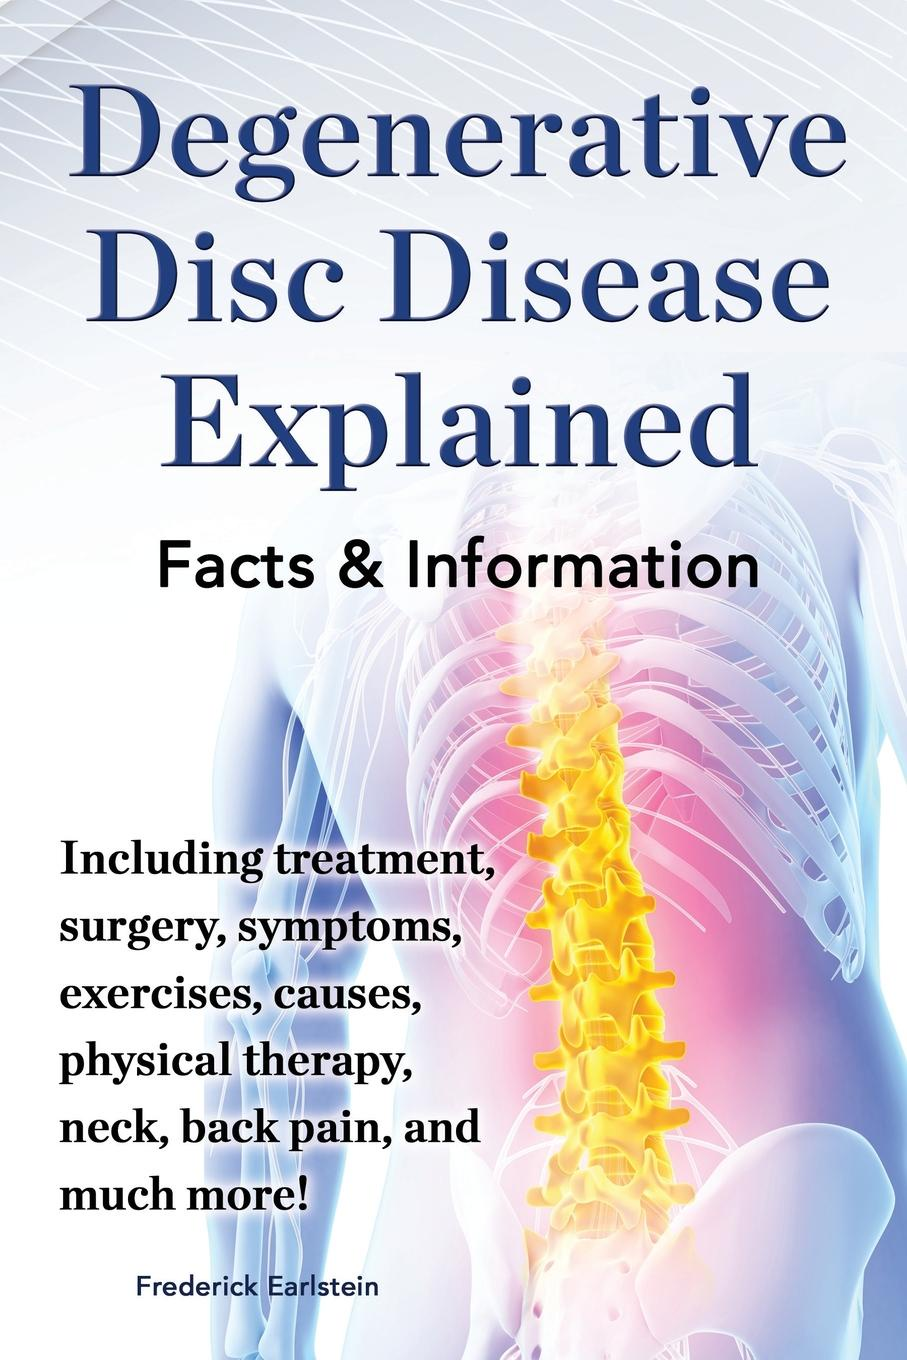 Frederick Earlstein Degenerative Disc Disease Explained. Including Treatment, Surgery, Symptoms, Exercises, Causes, Physical Therapy, Neck, Back, Pain, and Much More! Fac back massage stretcher stretching magic lumbar support waist neck relax mate device spine pain relief chiropractic health care